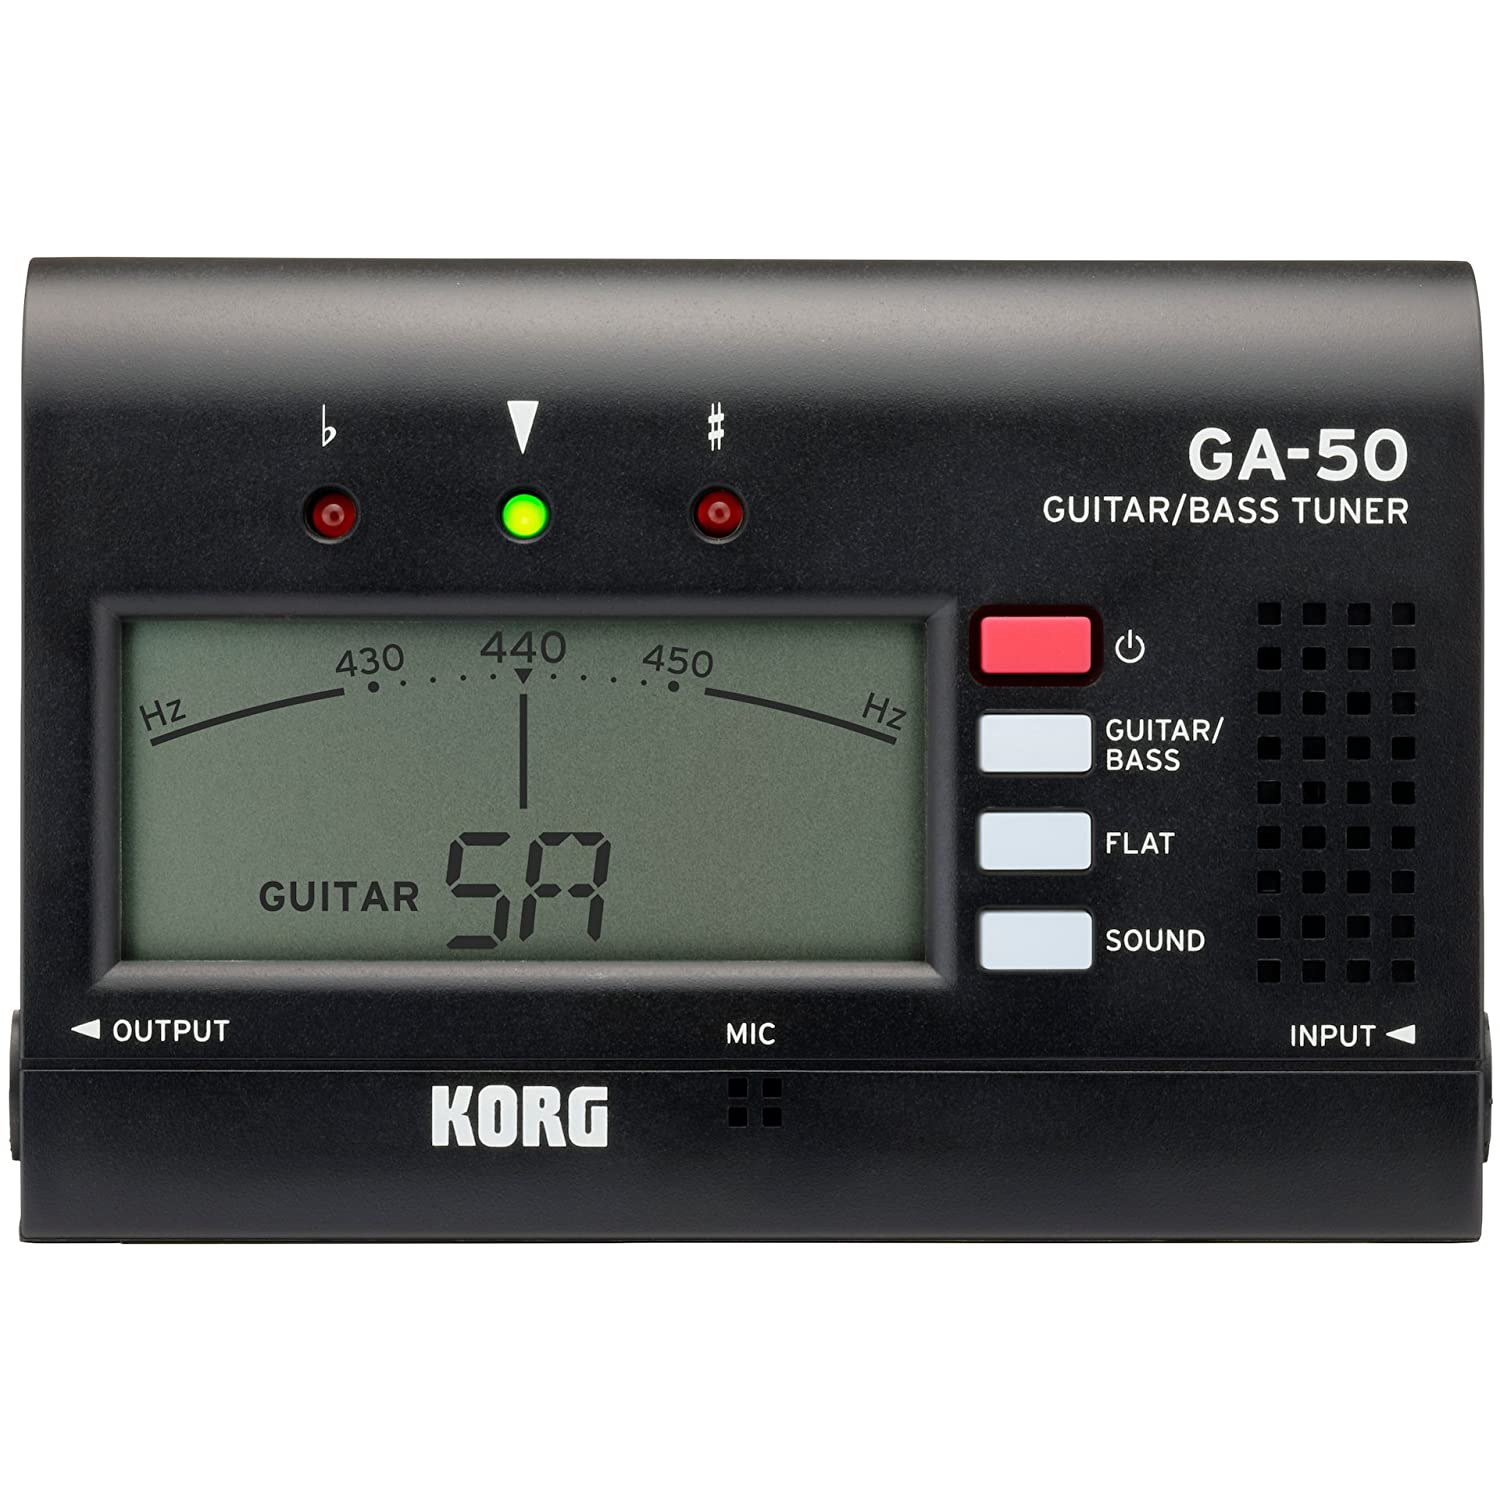 Korg Ga50 Accordeur de guitare Noir Korg USA Inc.